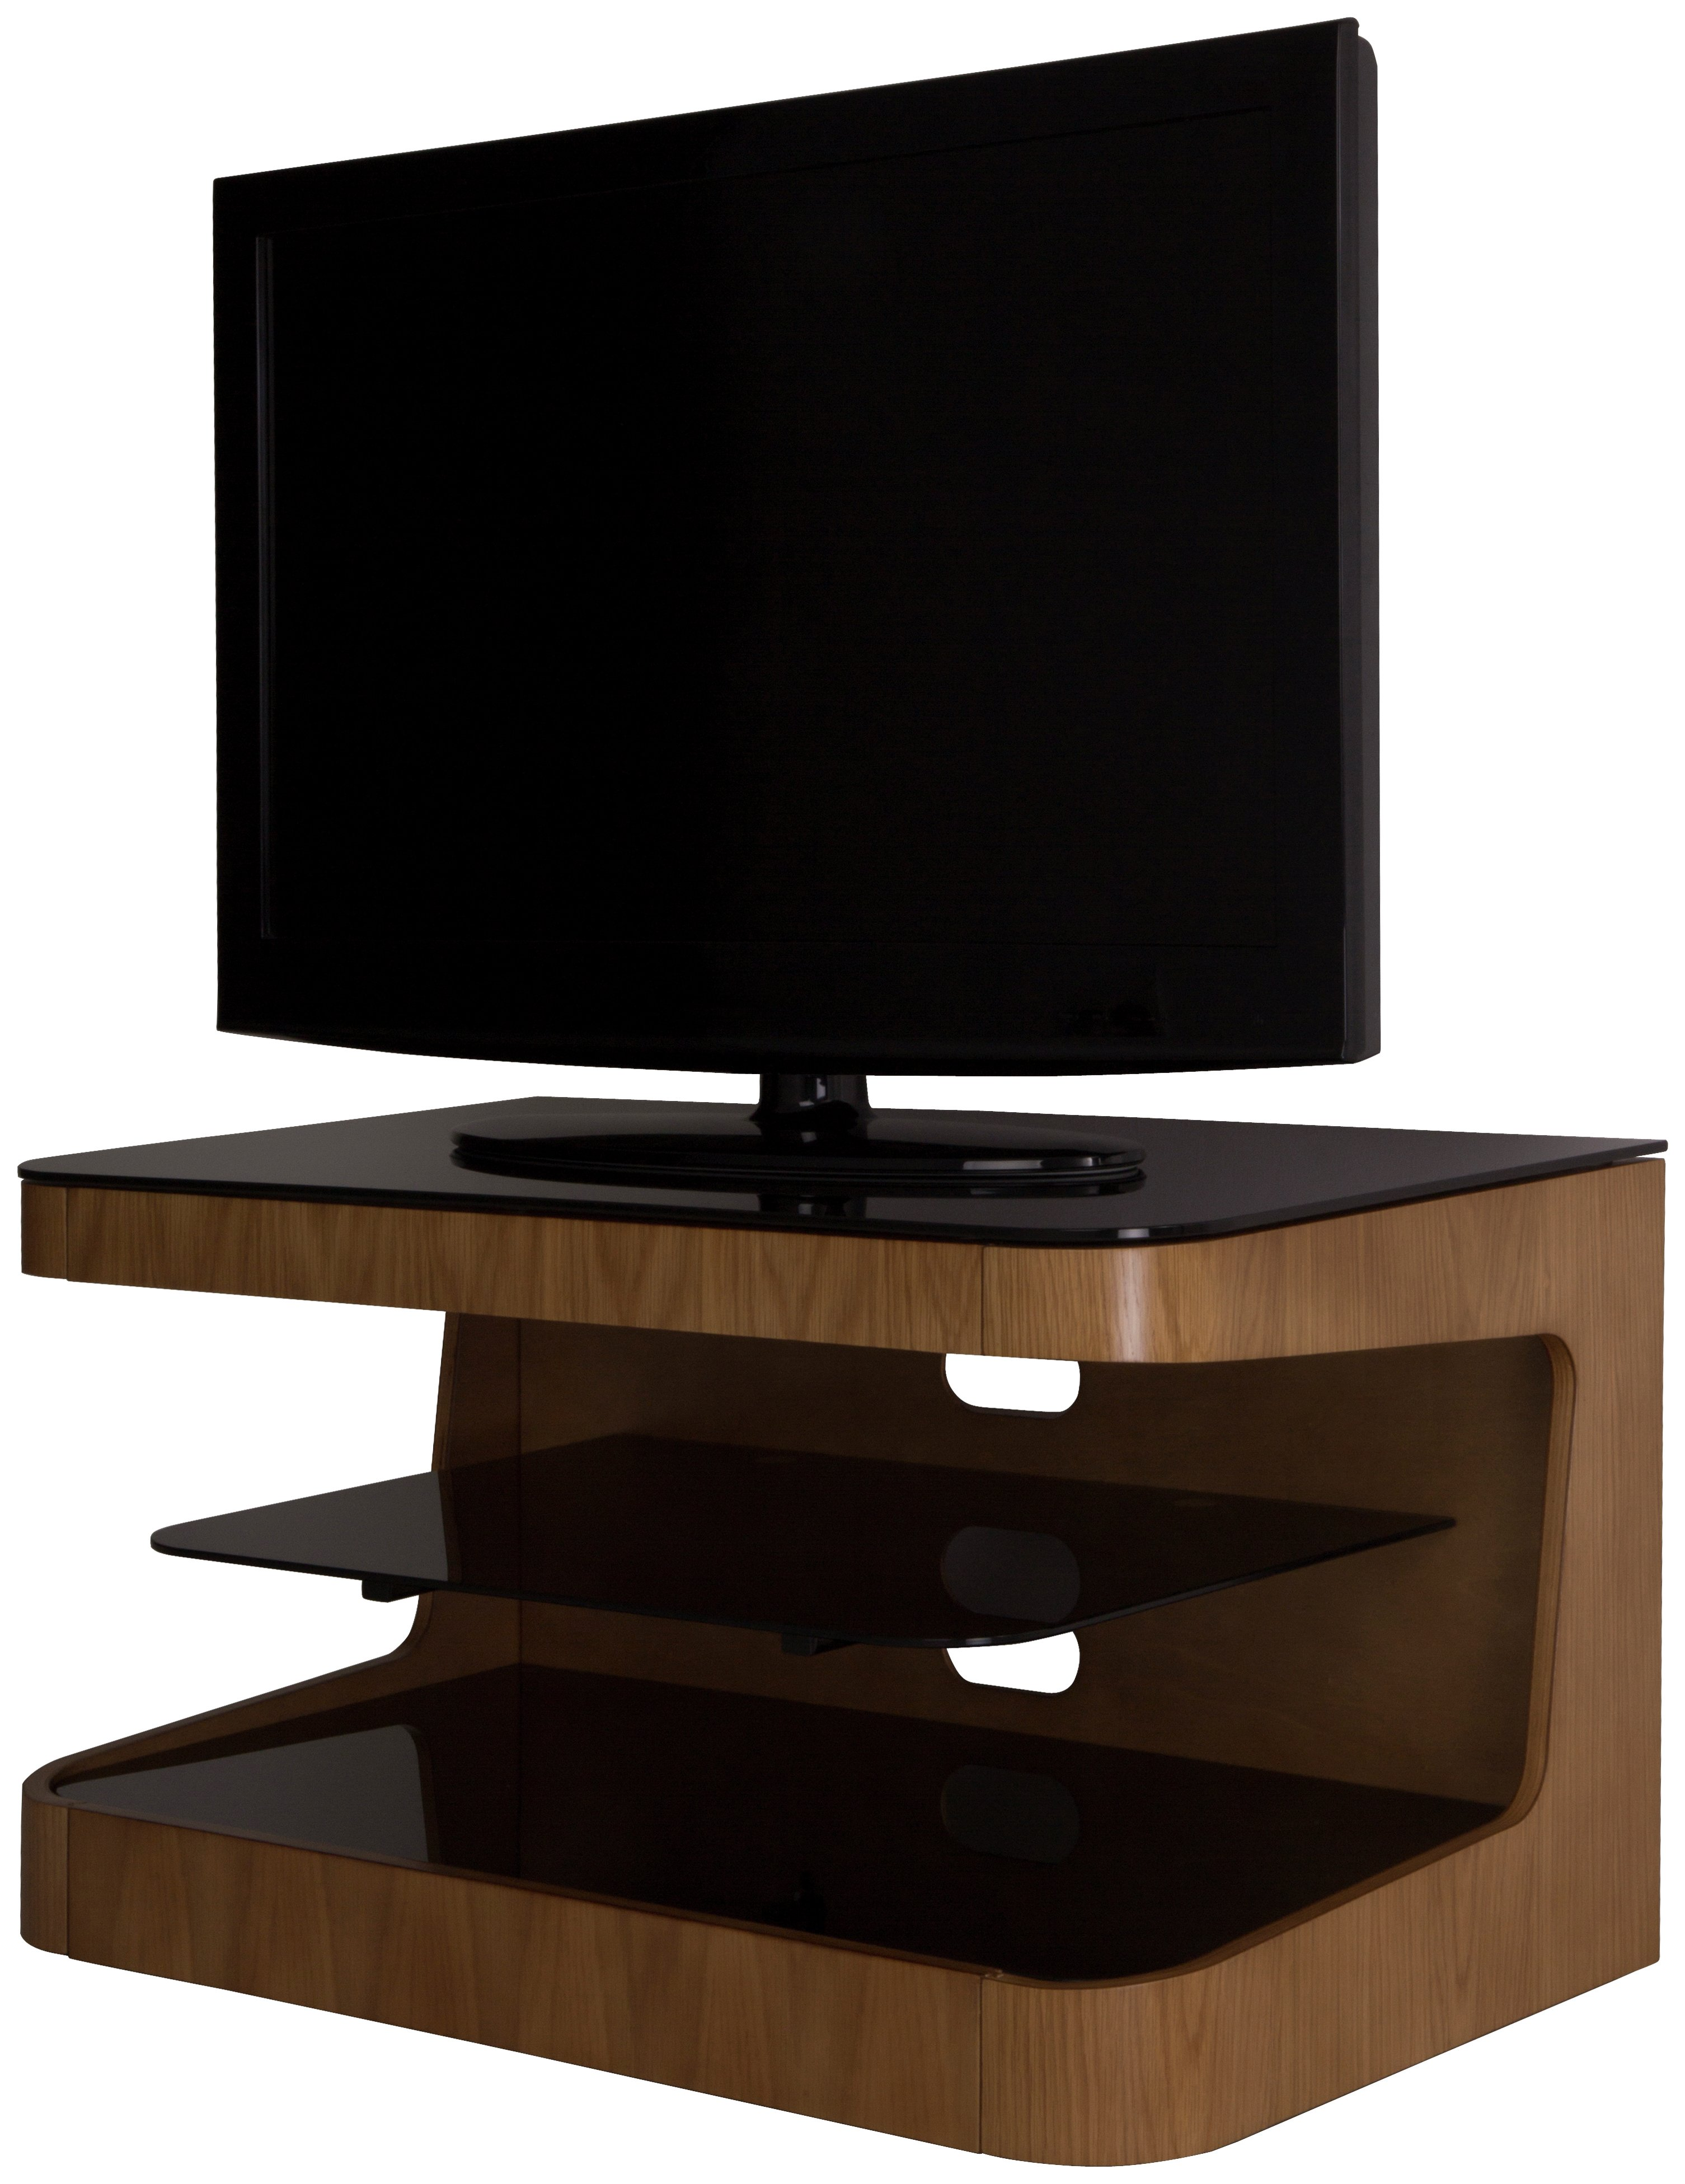 AVF Up to 40 Inch Wood TV Stand - Oak